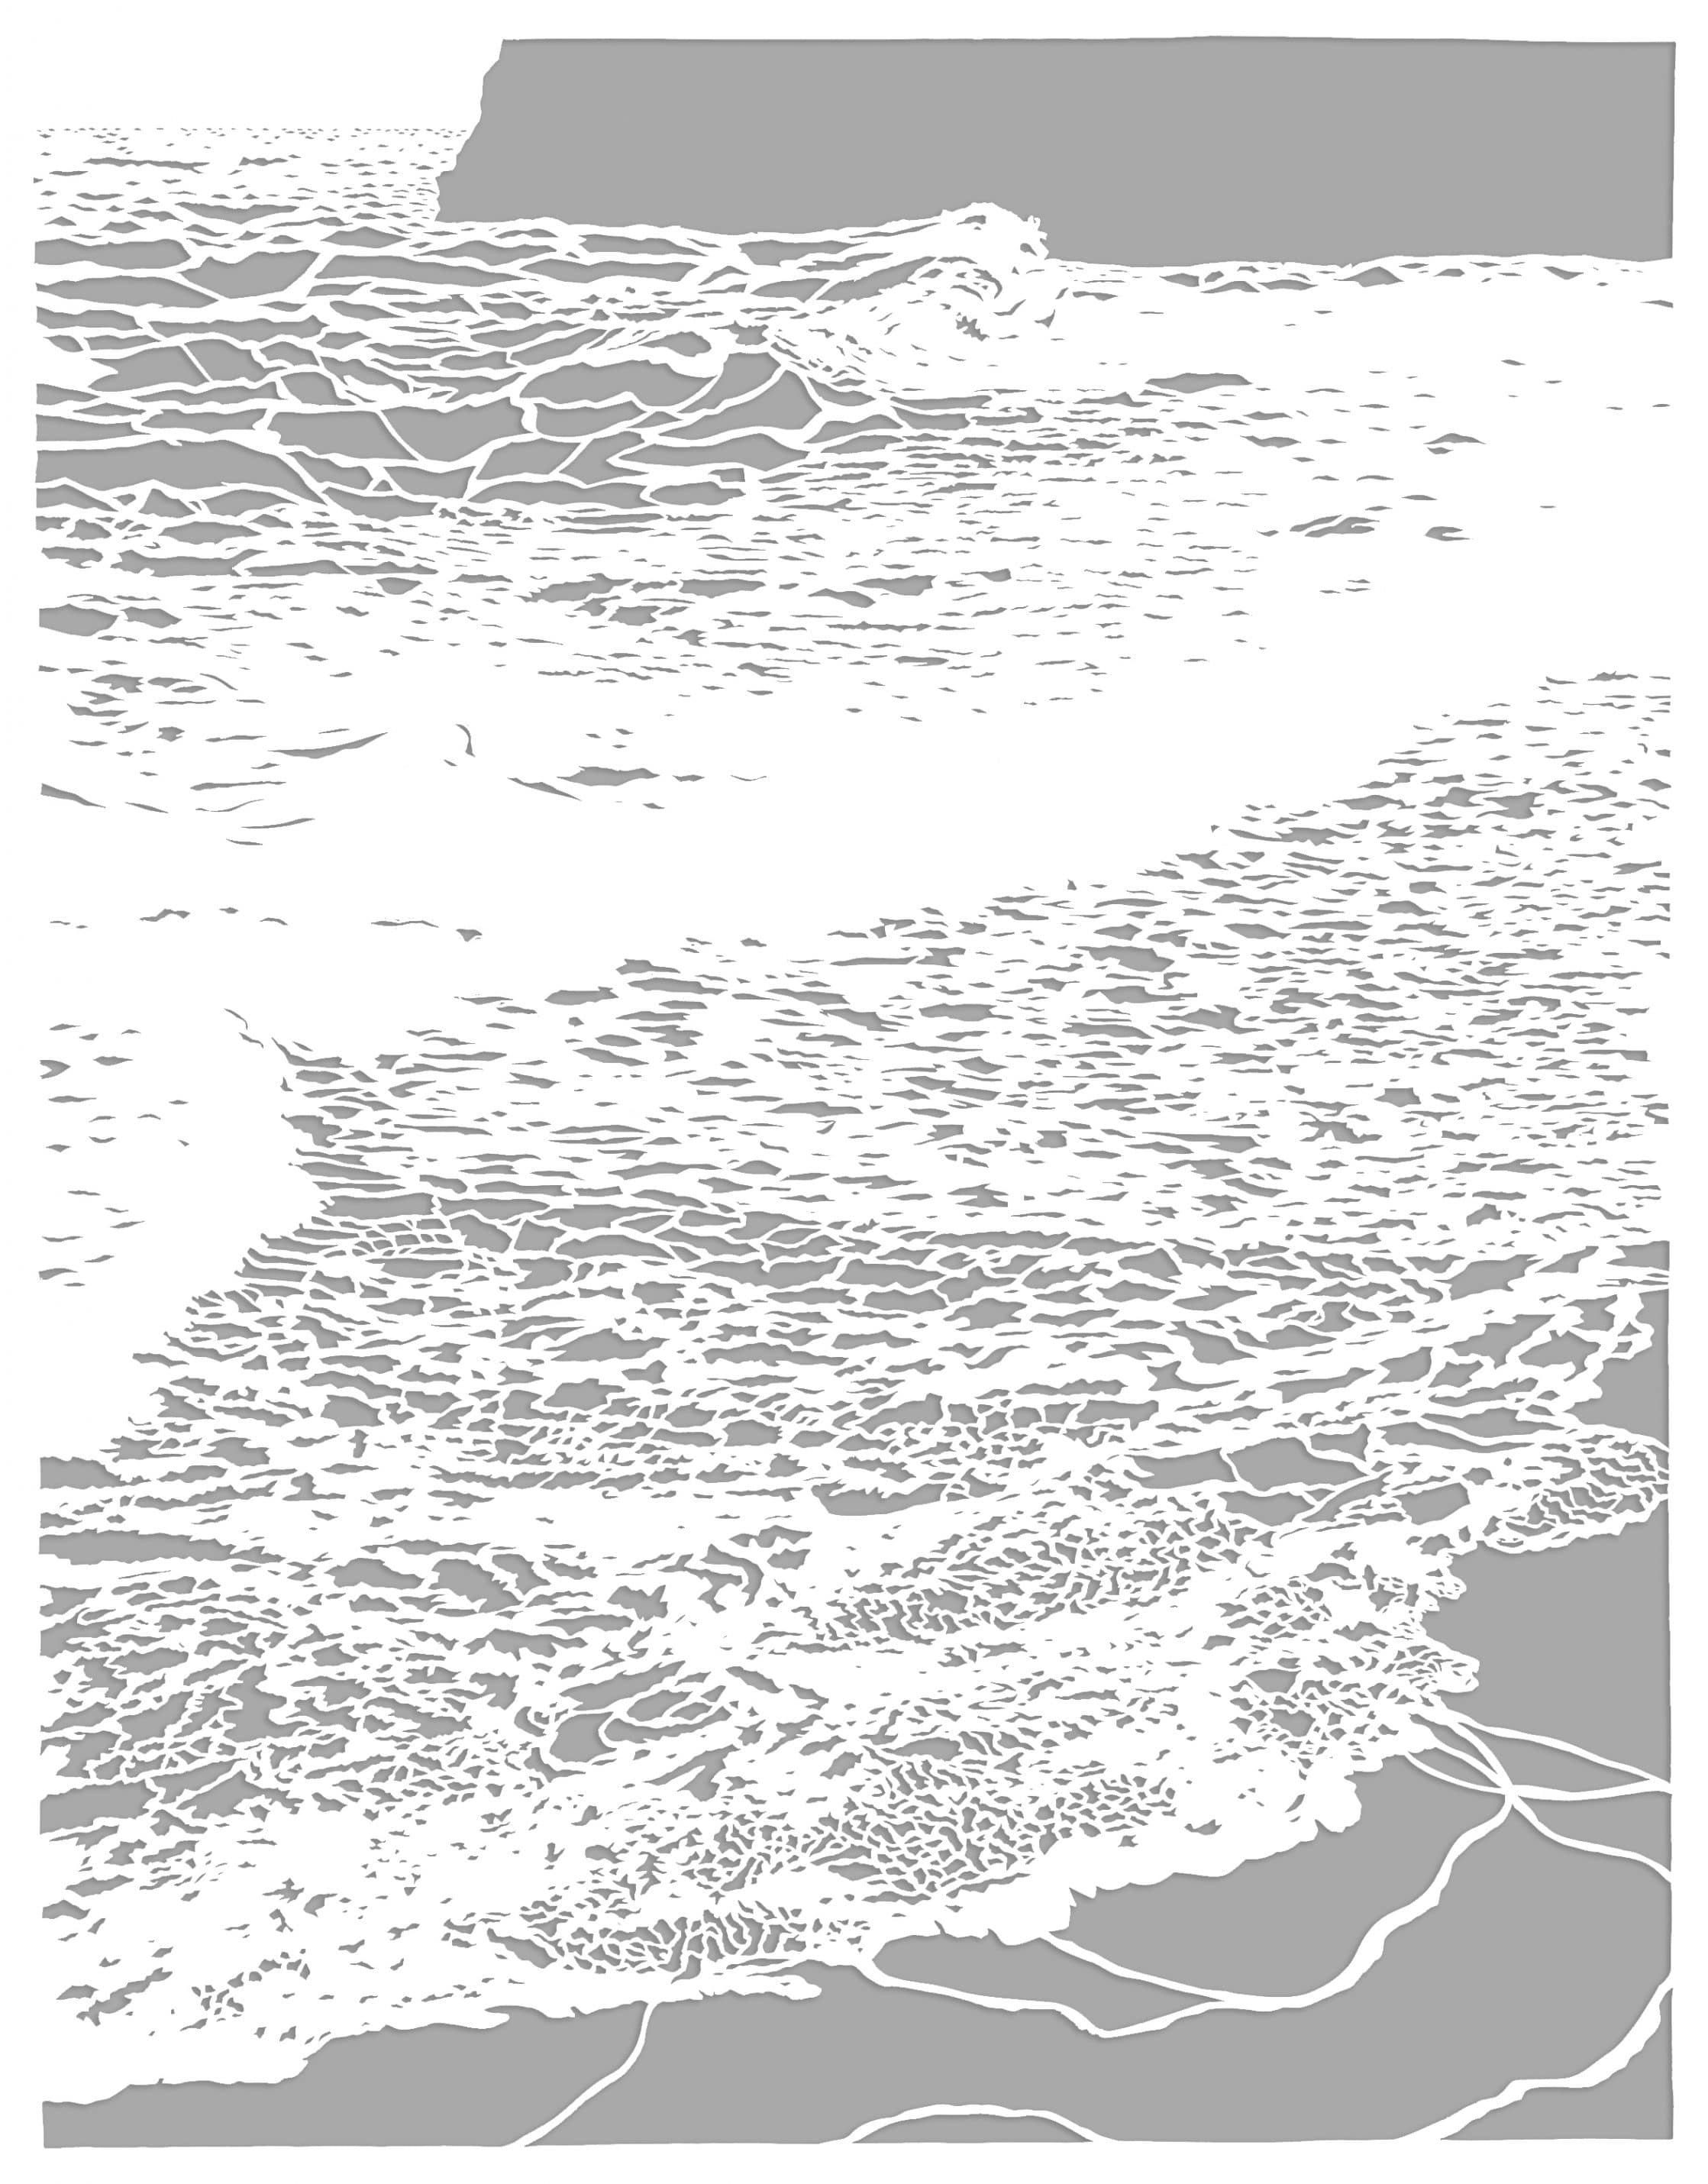 Roma McLaughlin, Incoming Tide, 2020, acid free white Fabriano paper, 120gsm, 111 x 87 cm